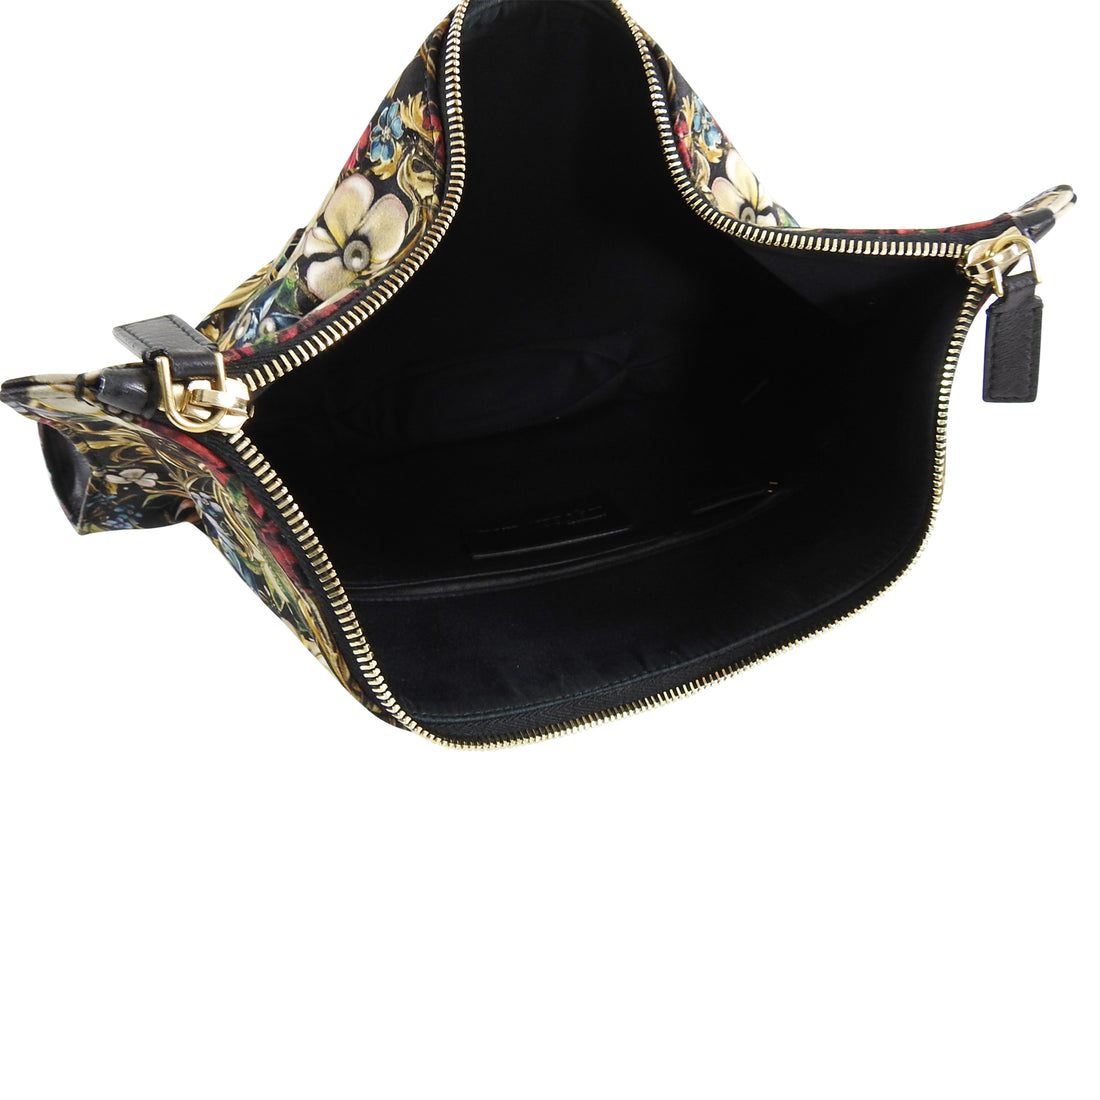 Alexander McQueen De Manta Jewel Pearl and Floral Clutch Bag